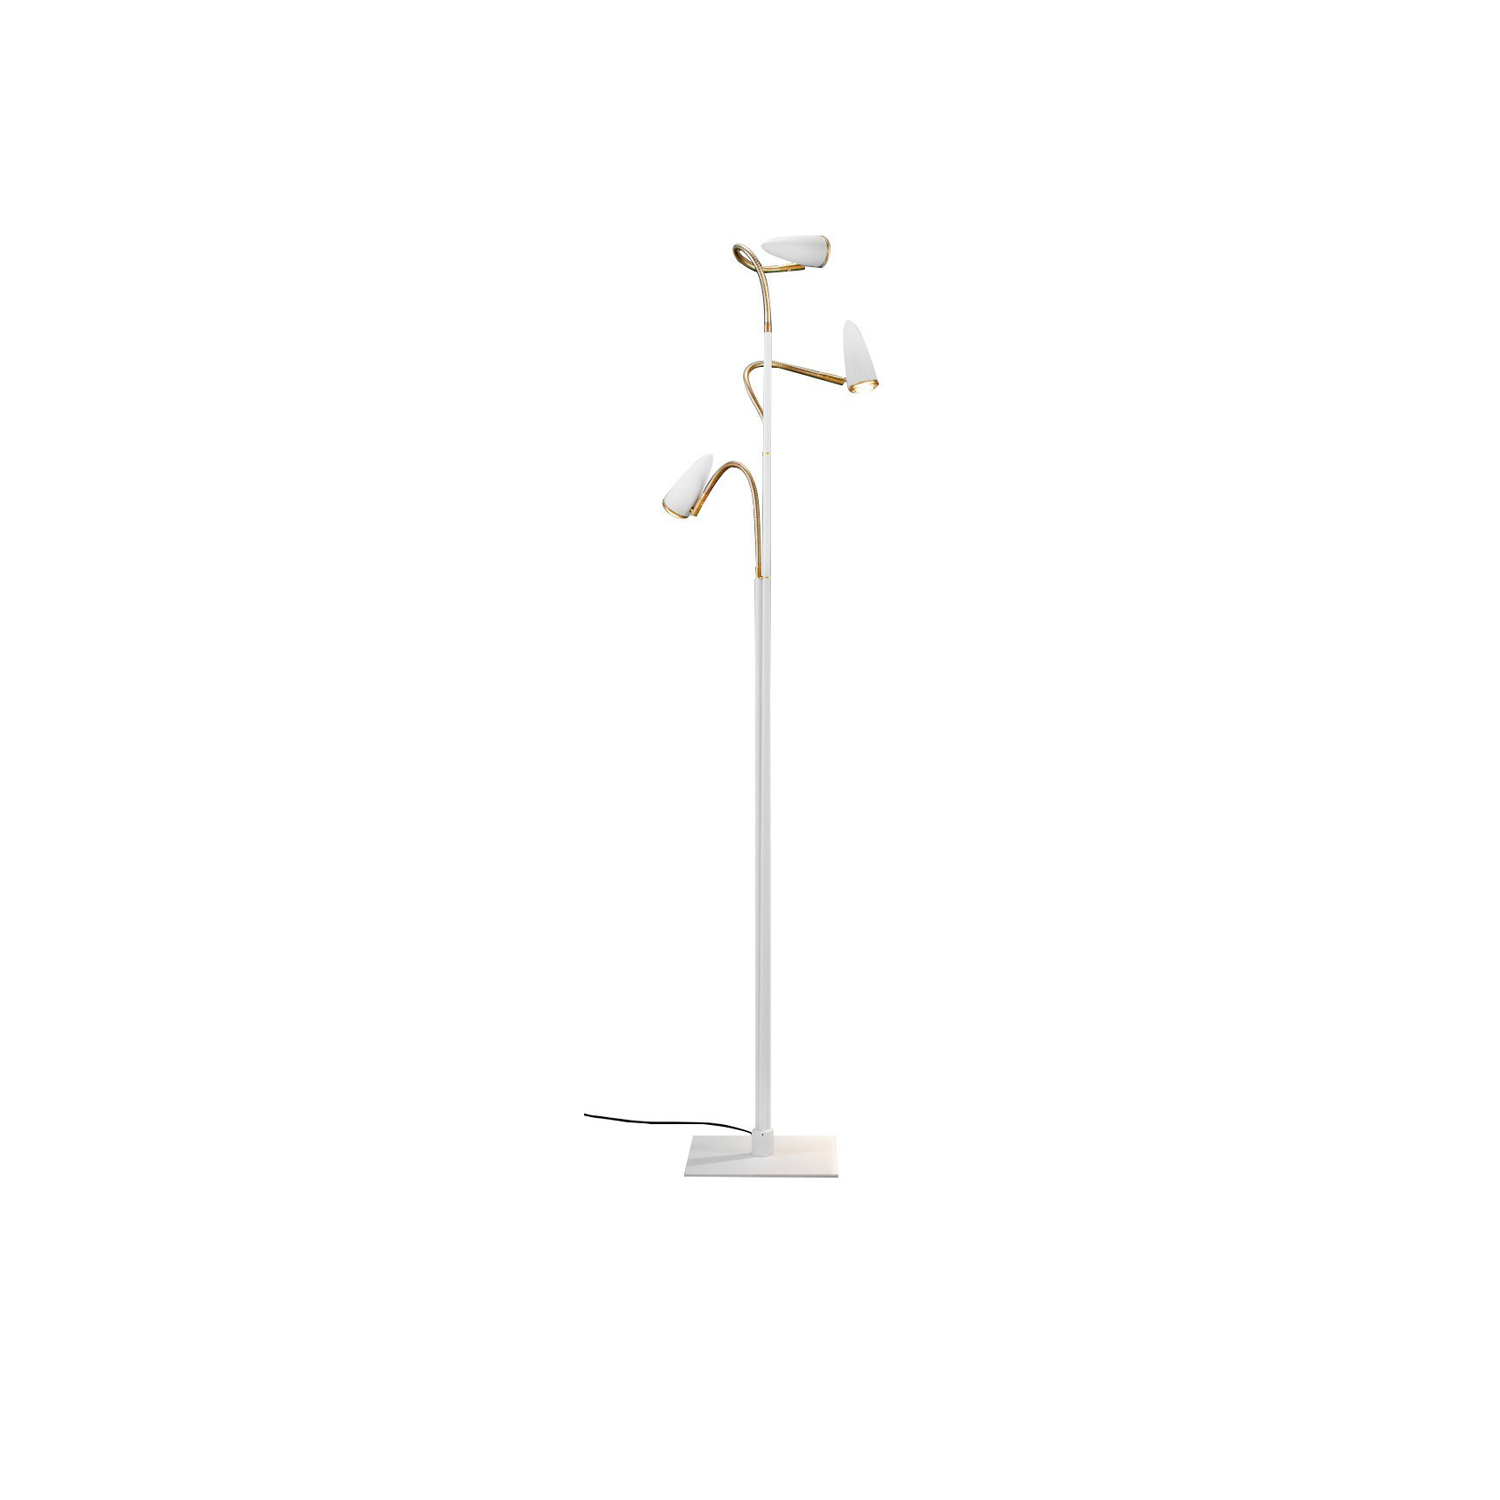 CicloItalia Flex F3 Floor Lamp - CicloItalia is undergoing a new makeover to provide the inspiration for a new collection named CicloItalia Flex. The brass finish is replaced by a more contemporary version of the headlights – in black or white and with a more elongated shape – but returns in the flex and in the rims of the glass lenses. | Matter of Stuff